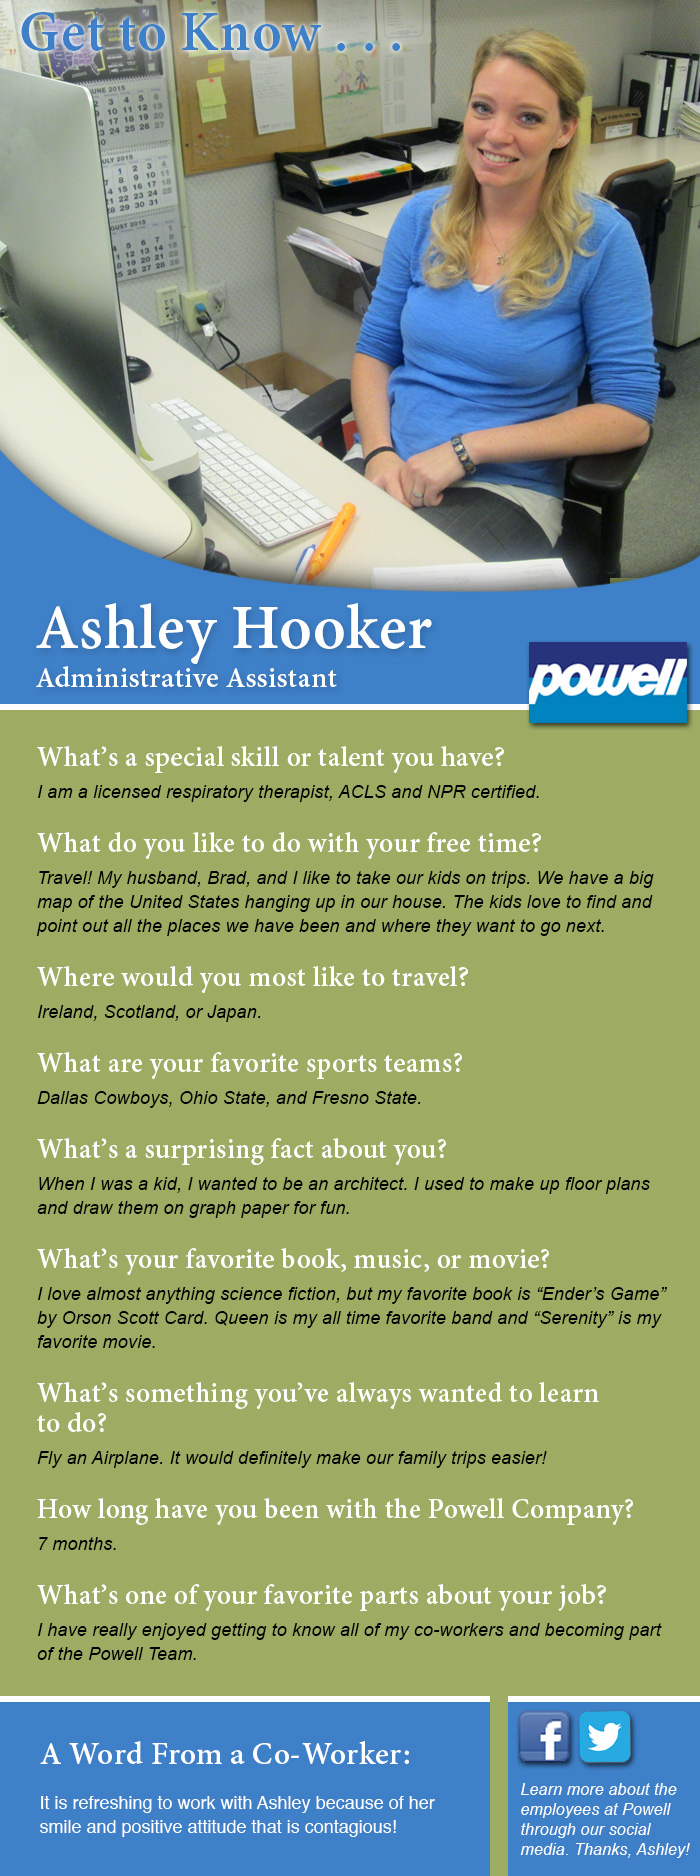 7-15 get to know Ashley